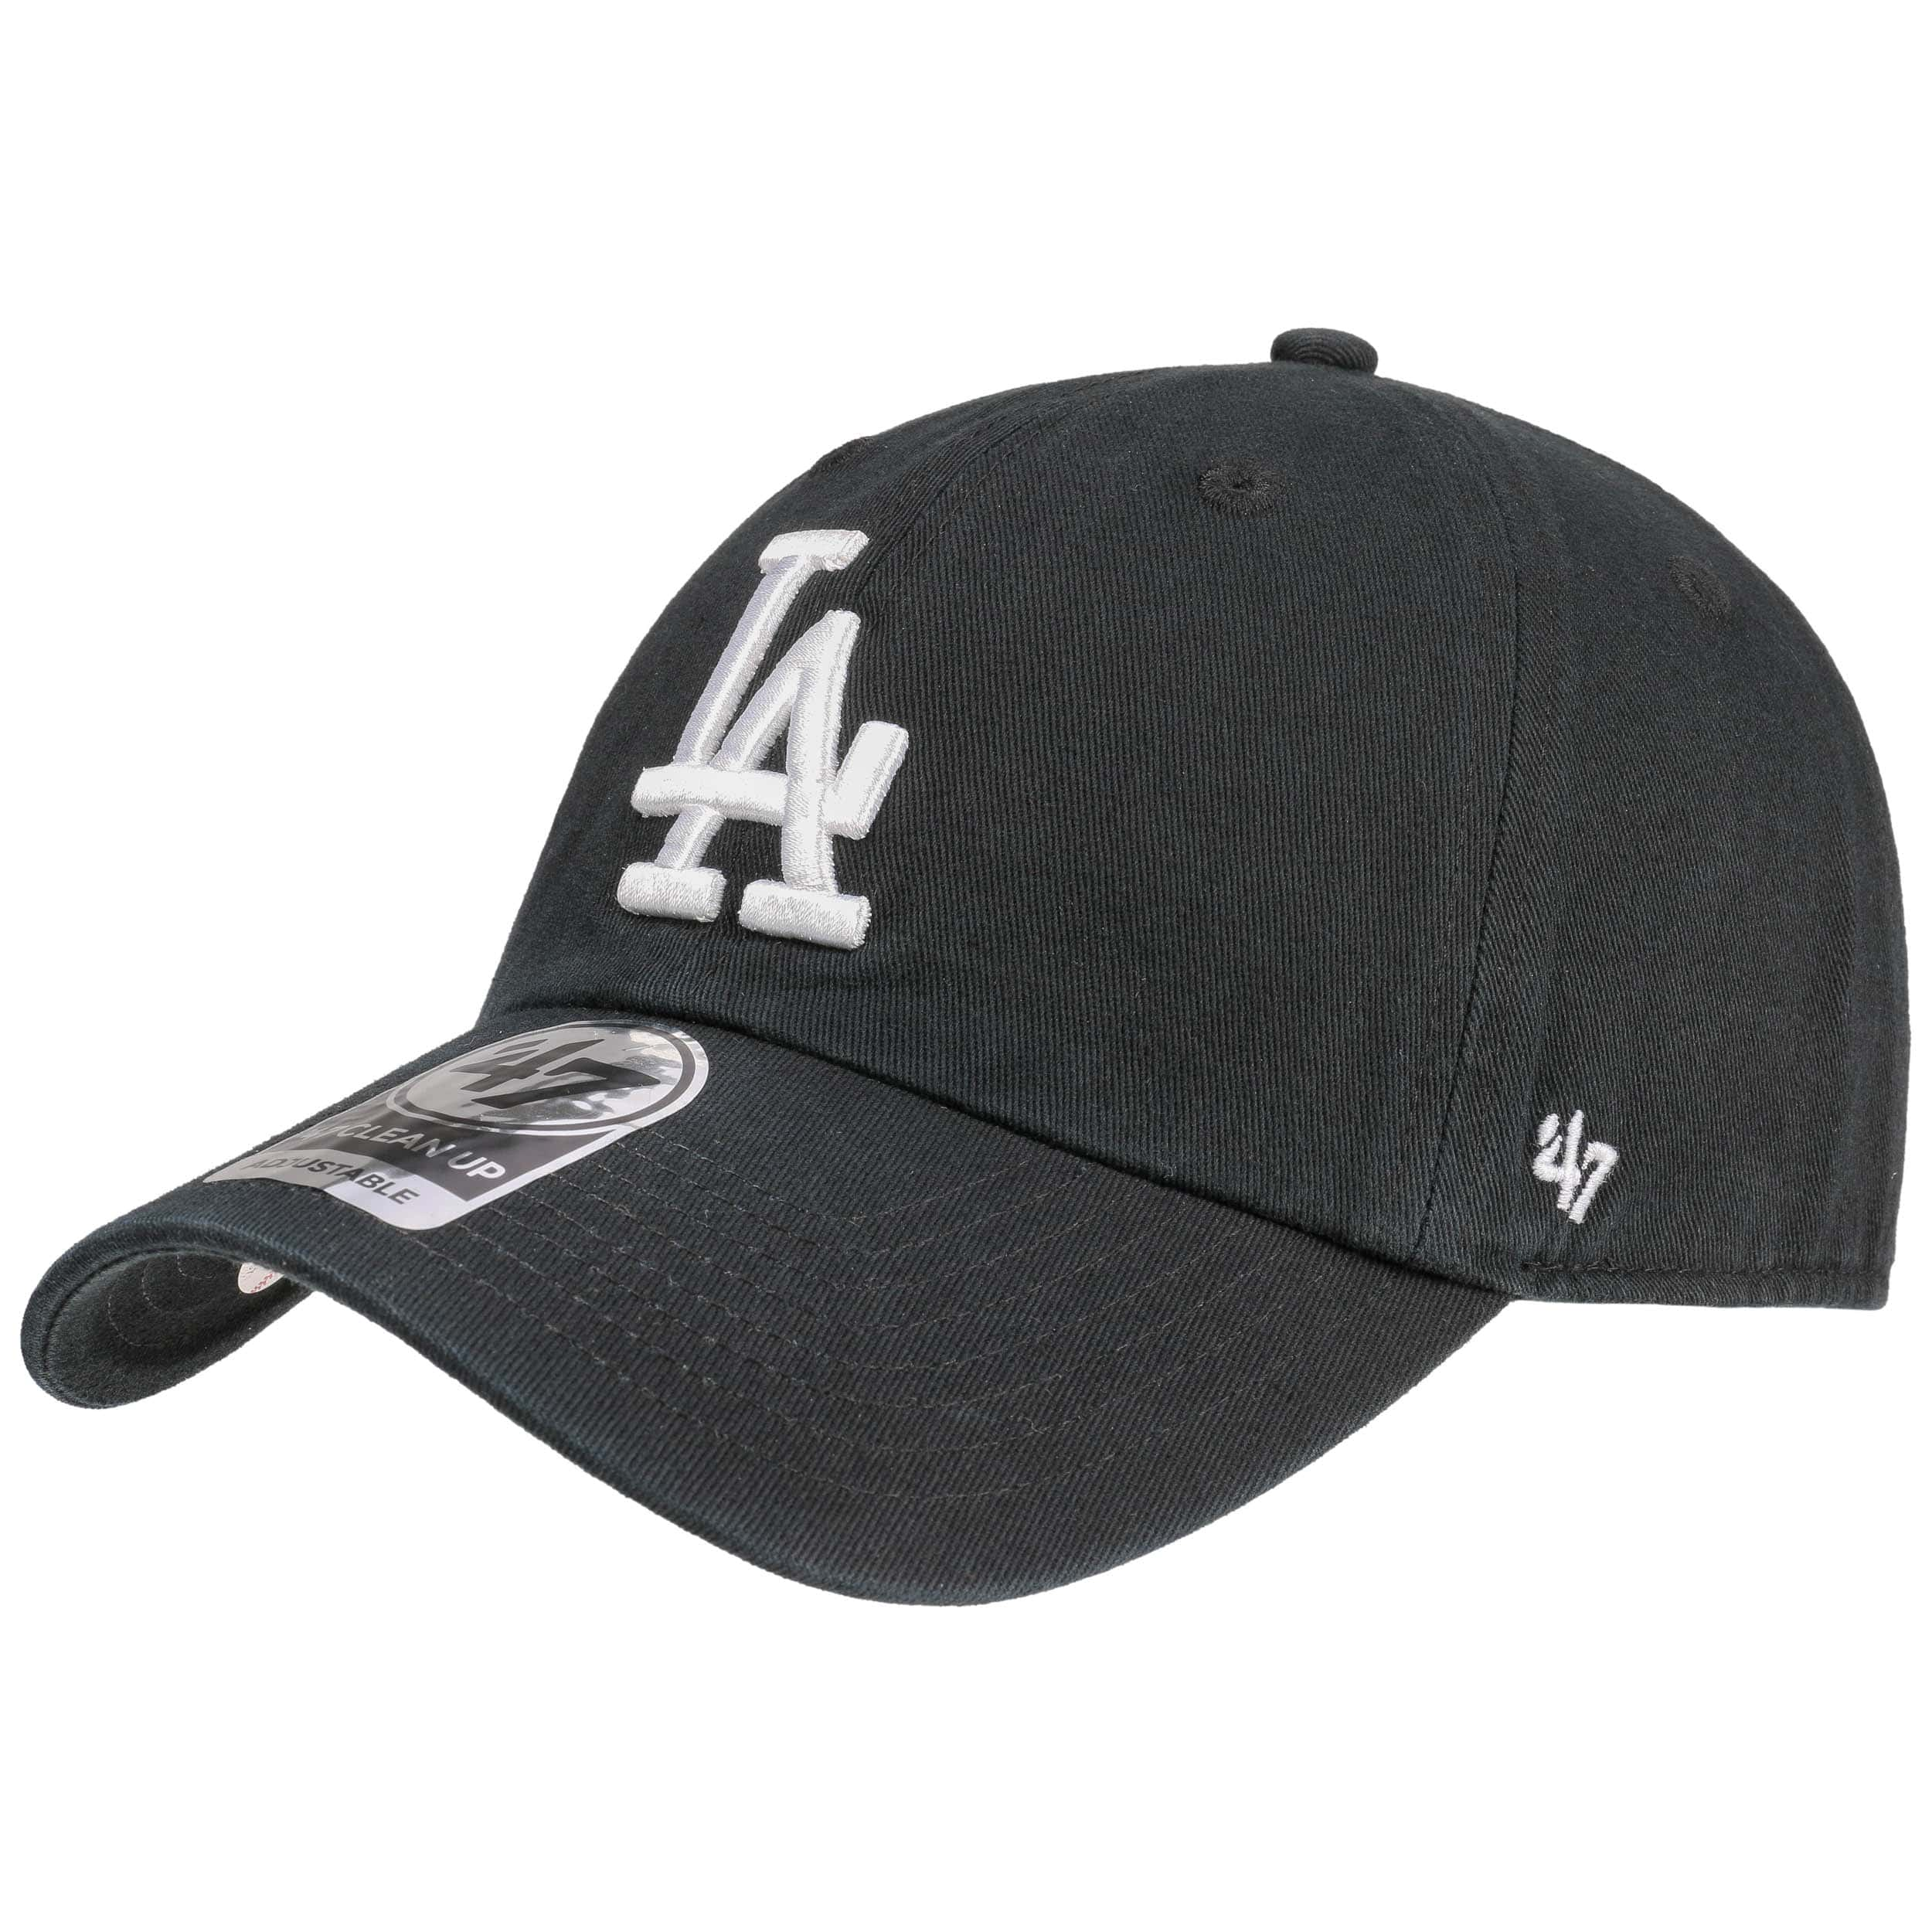 08689fce Clean Up LA Dodgers Cap by 47 Brand